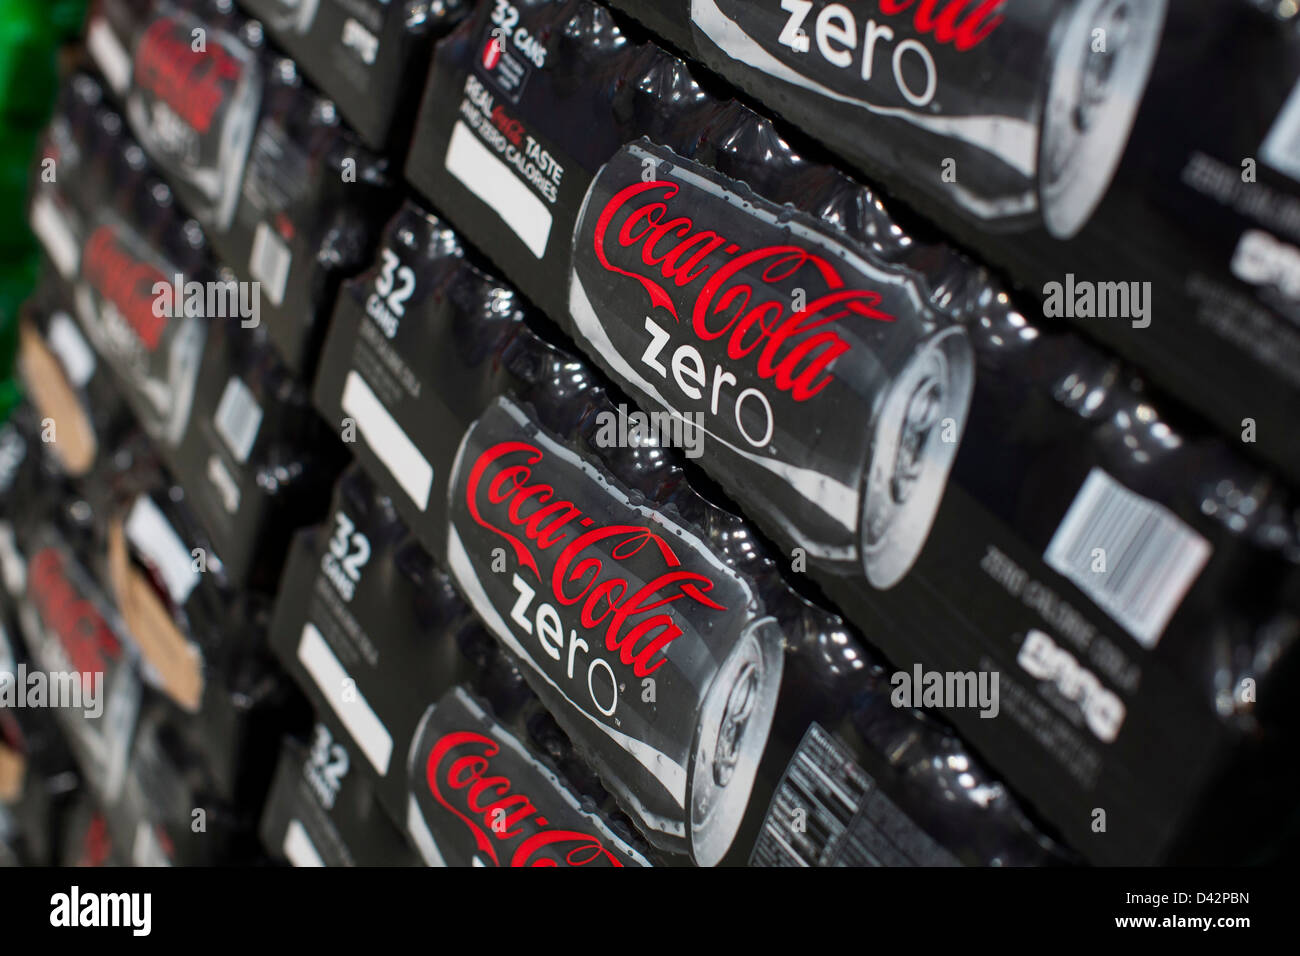 Coca cola zero on display at a costco wholesale warehouse club stock coca cola zero on display at a costco wholesale warehouse club stock photo 54151209 alamy thecheapjerseys Images